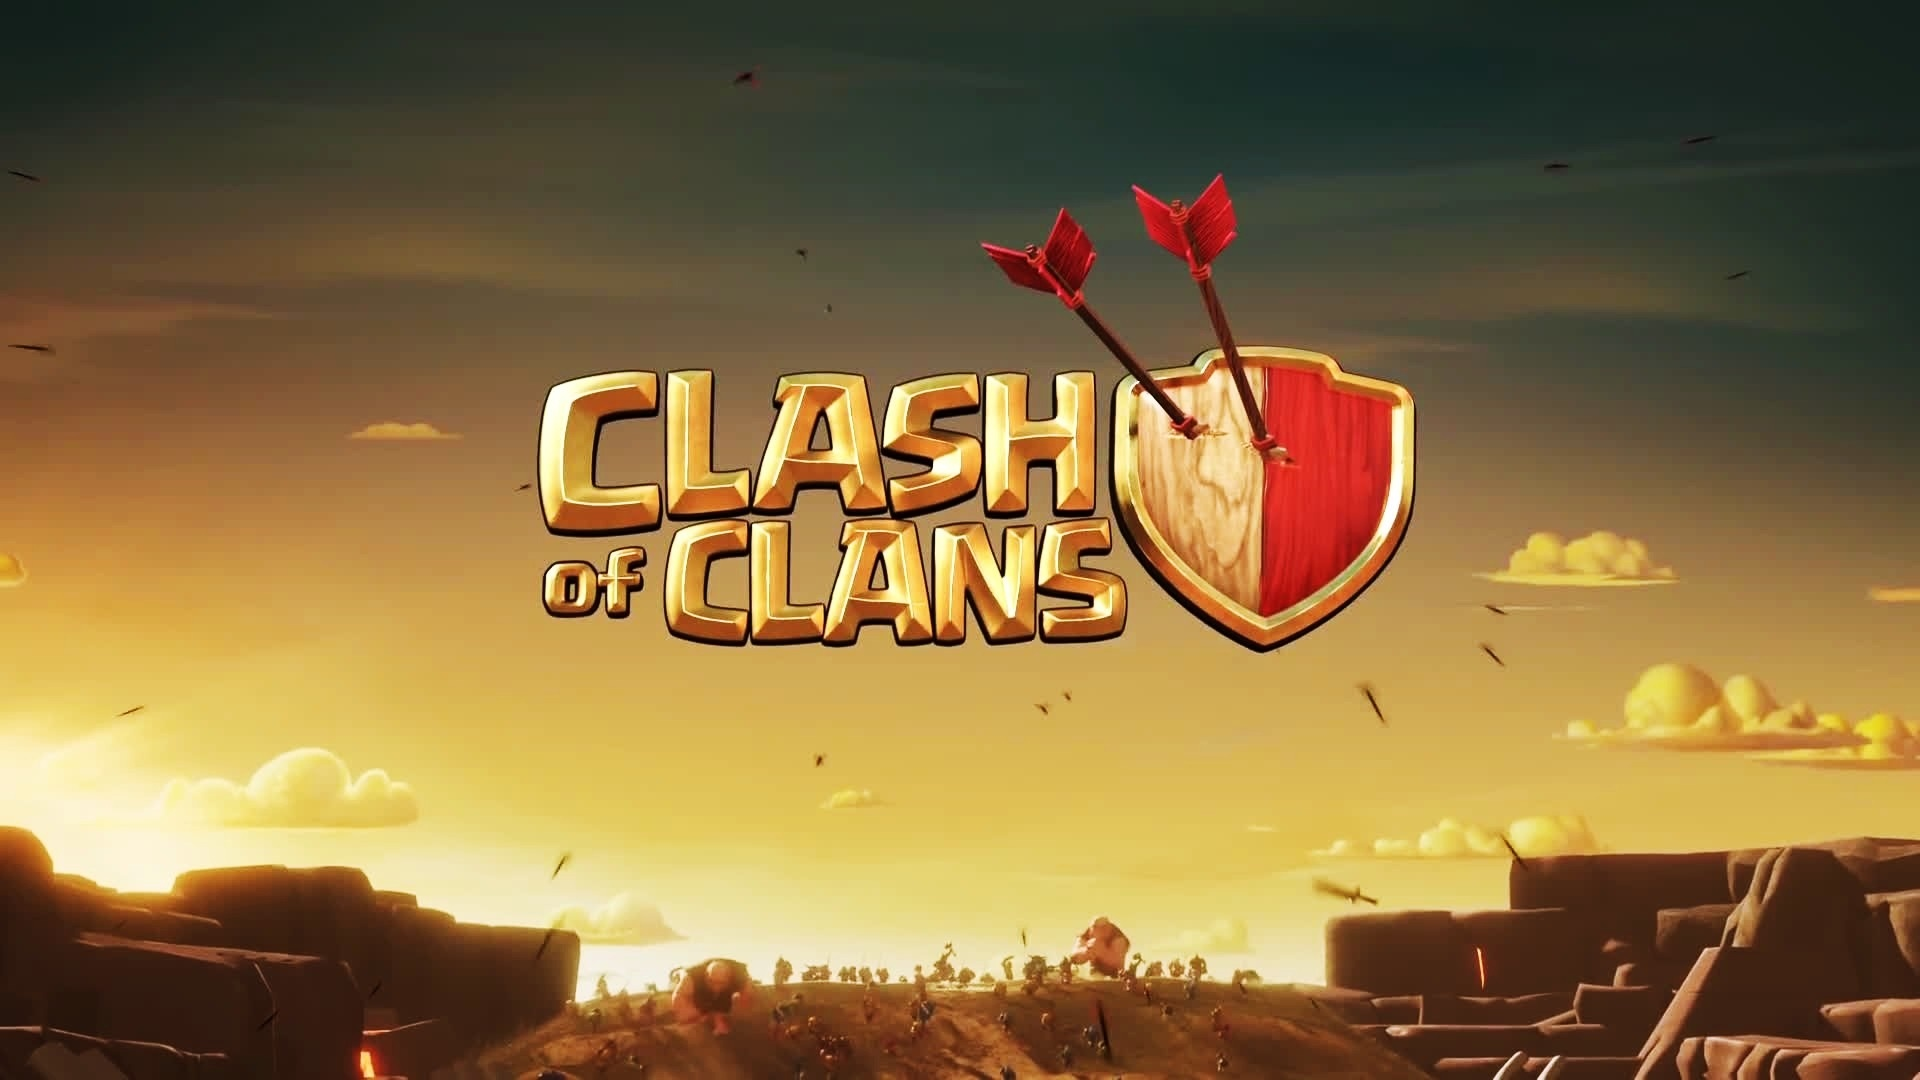 Clash Of Clans computer background